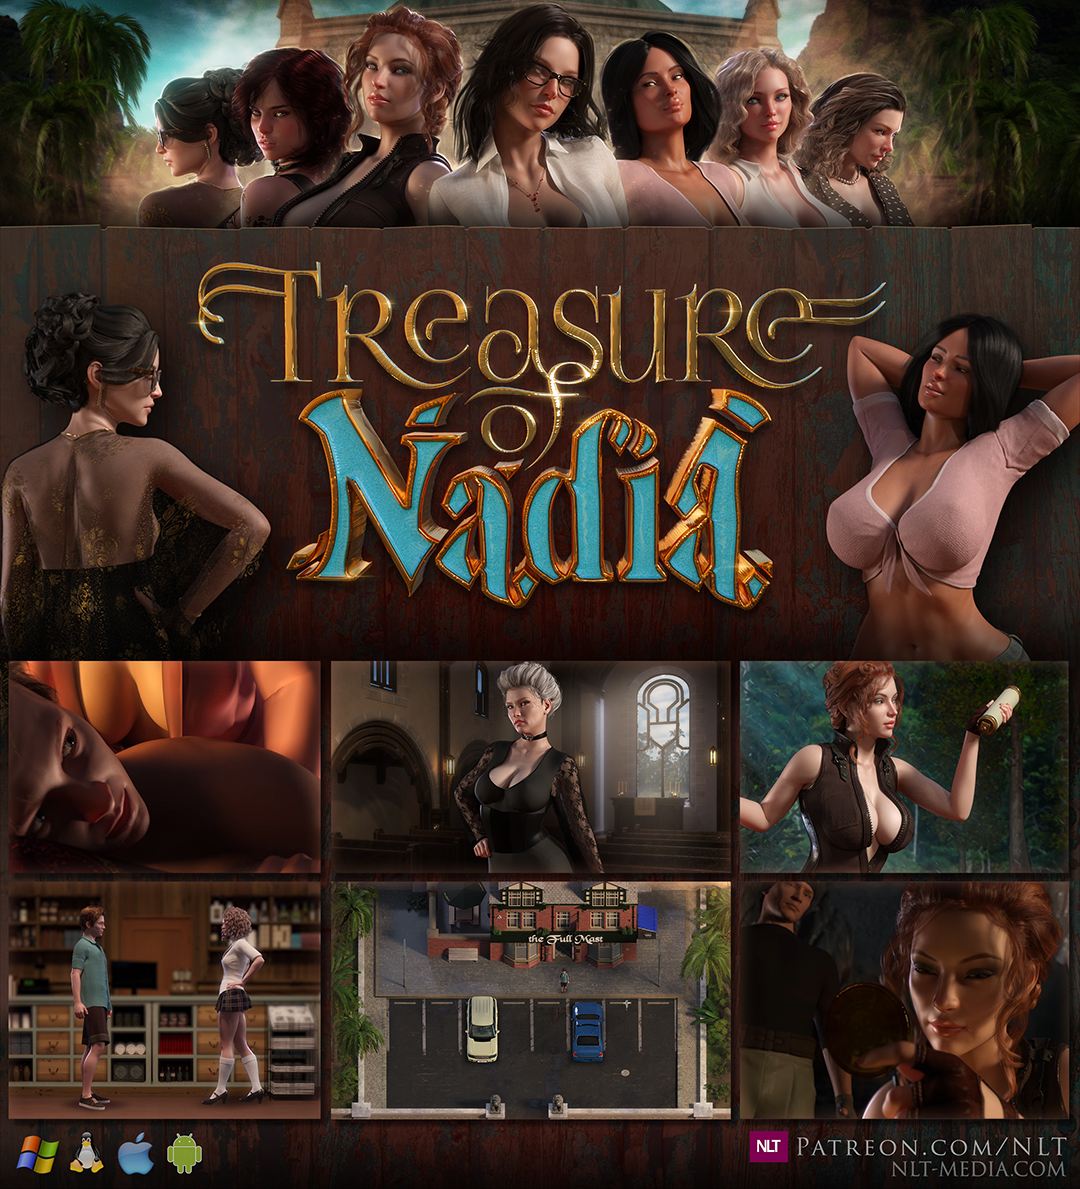 NLT Media has released a new game called Treasure of Nadia!